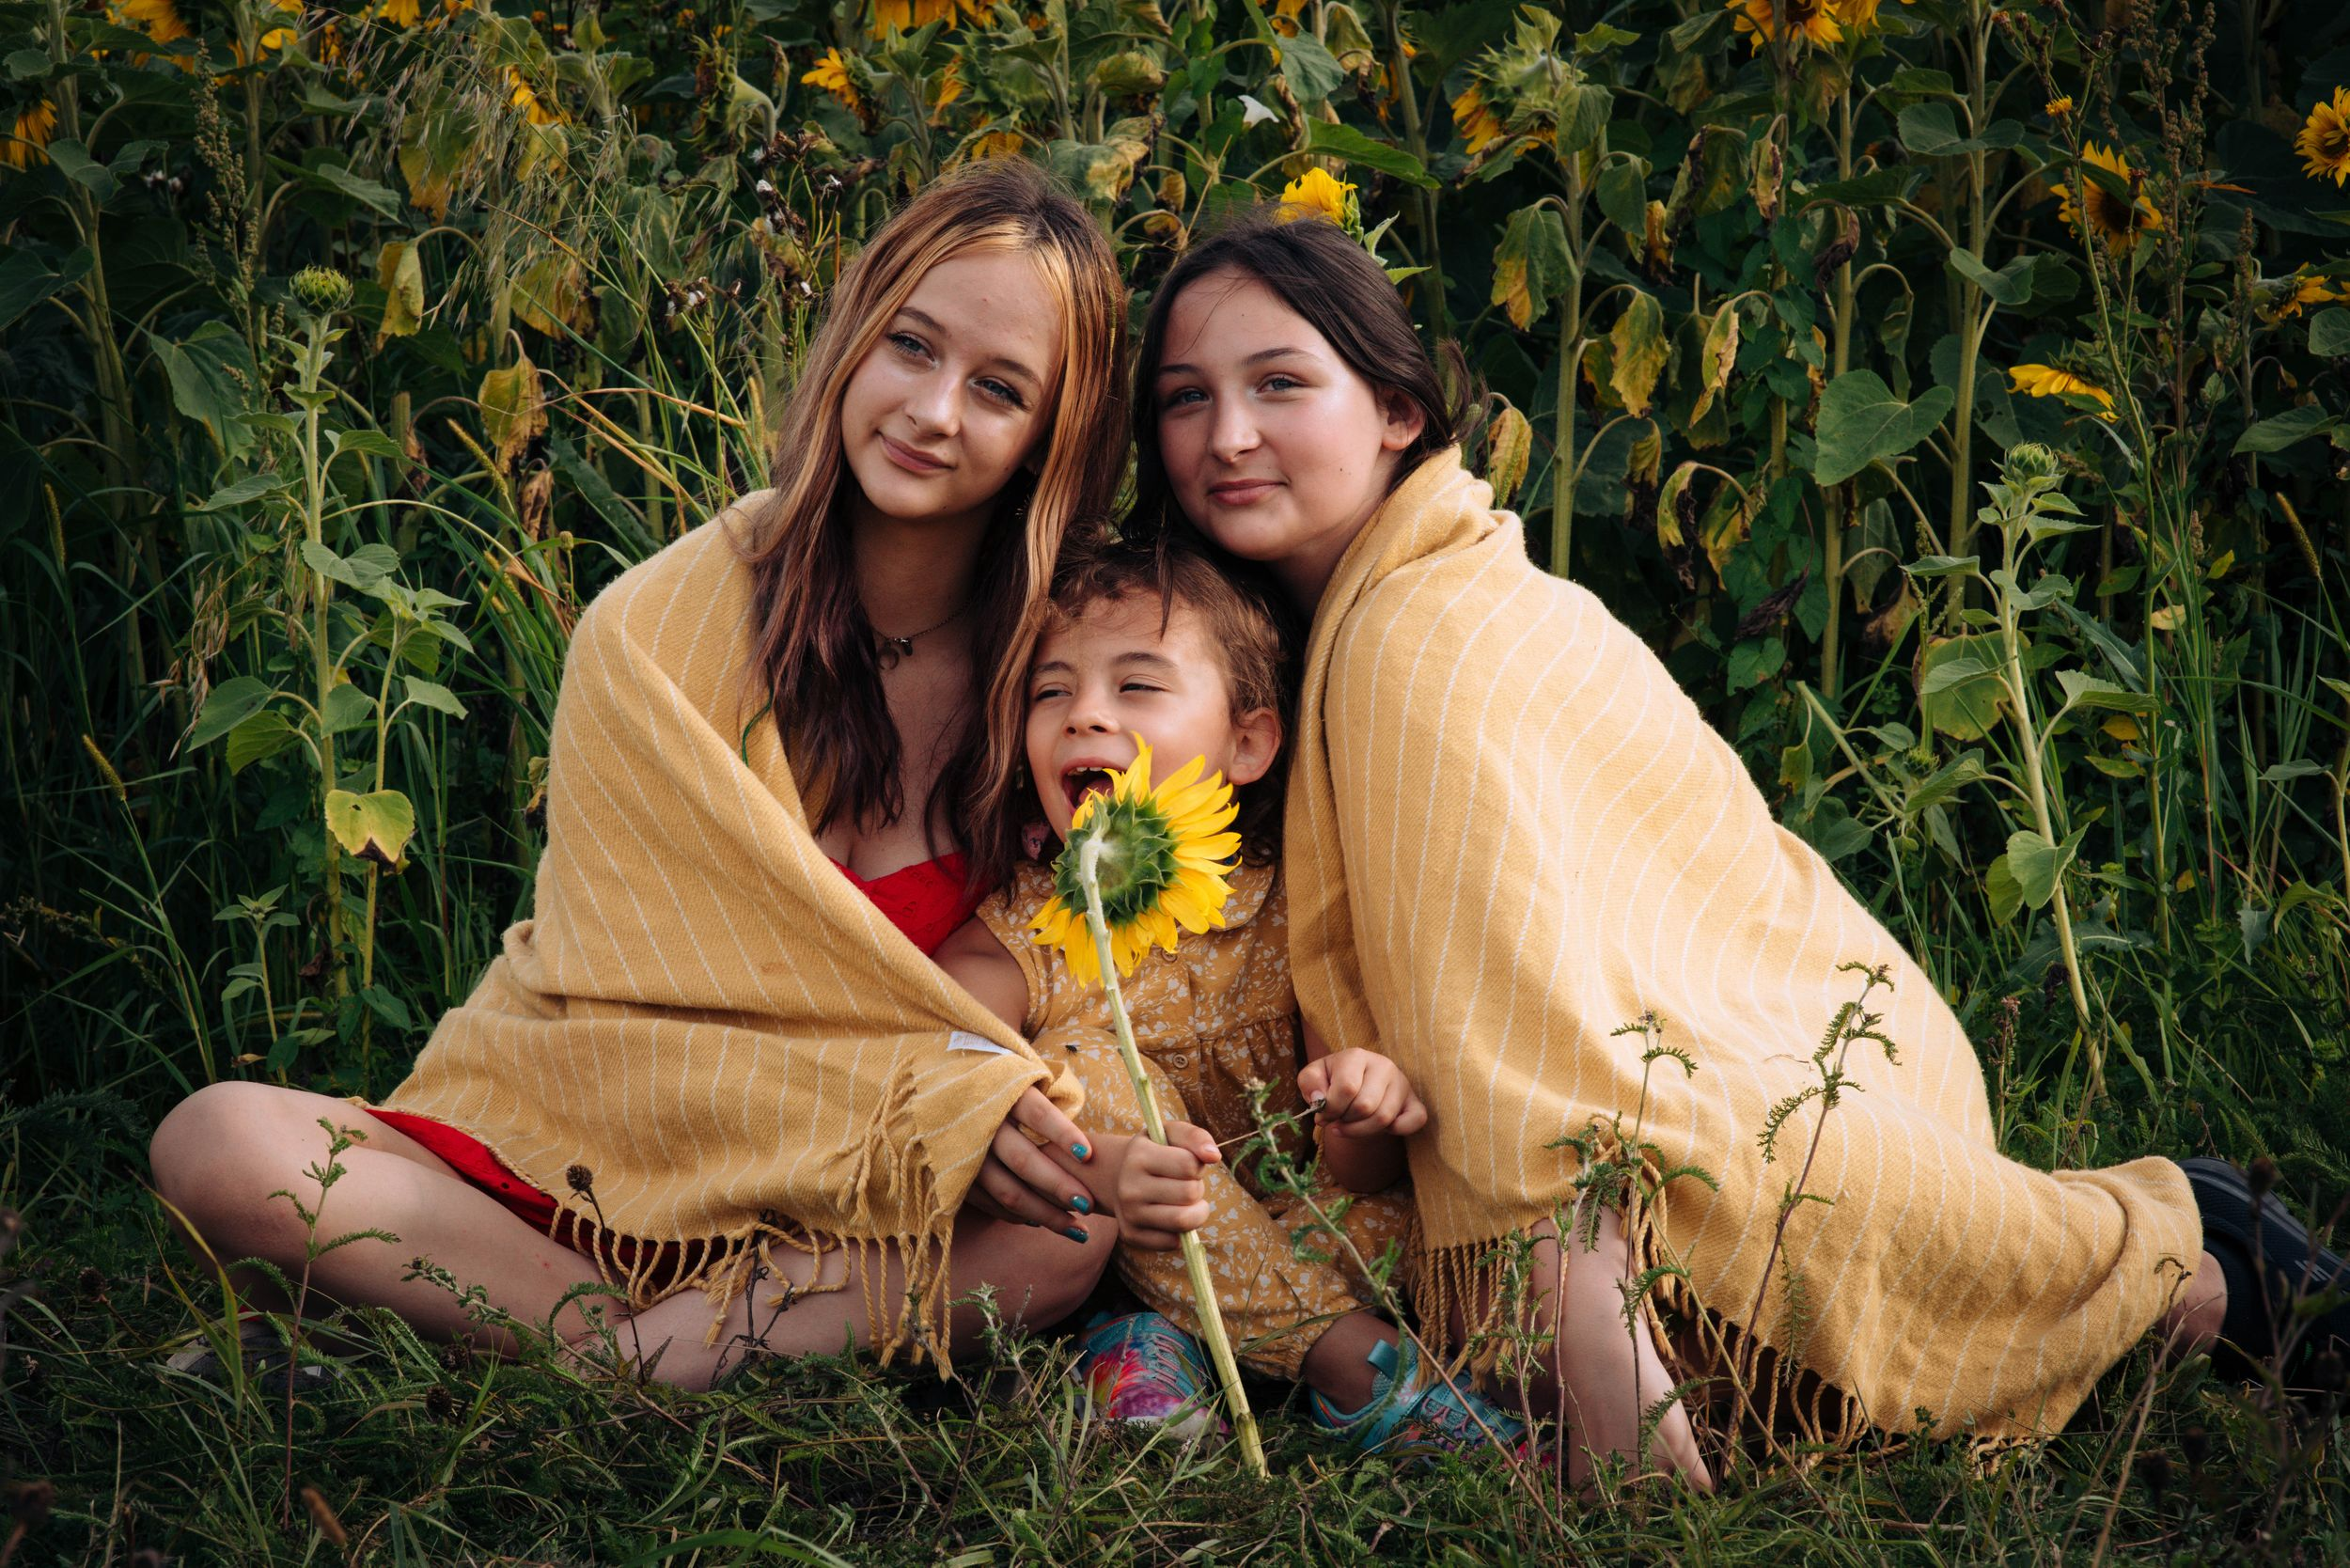 Zara Davis Photography Stroud Gloucestershire Cotswolds Family sunflowers 3 sisters in banket